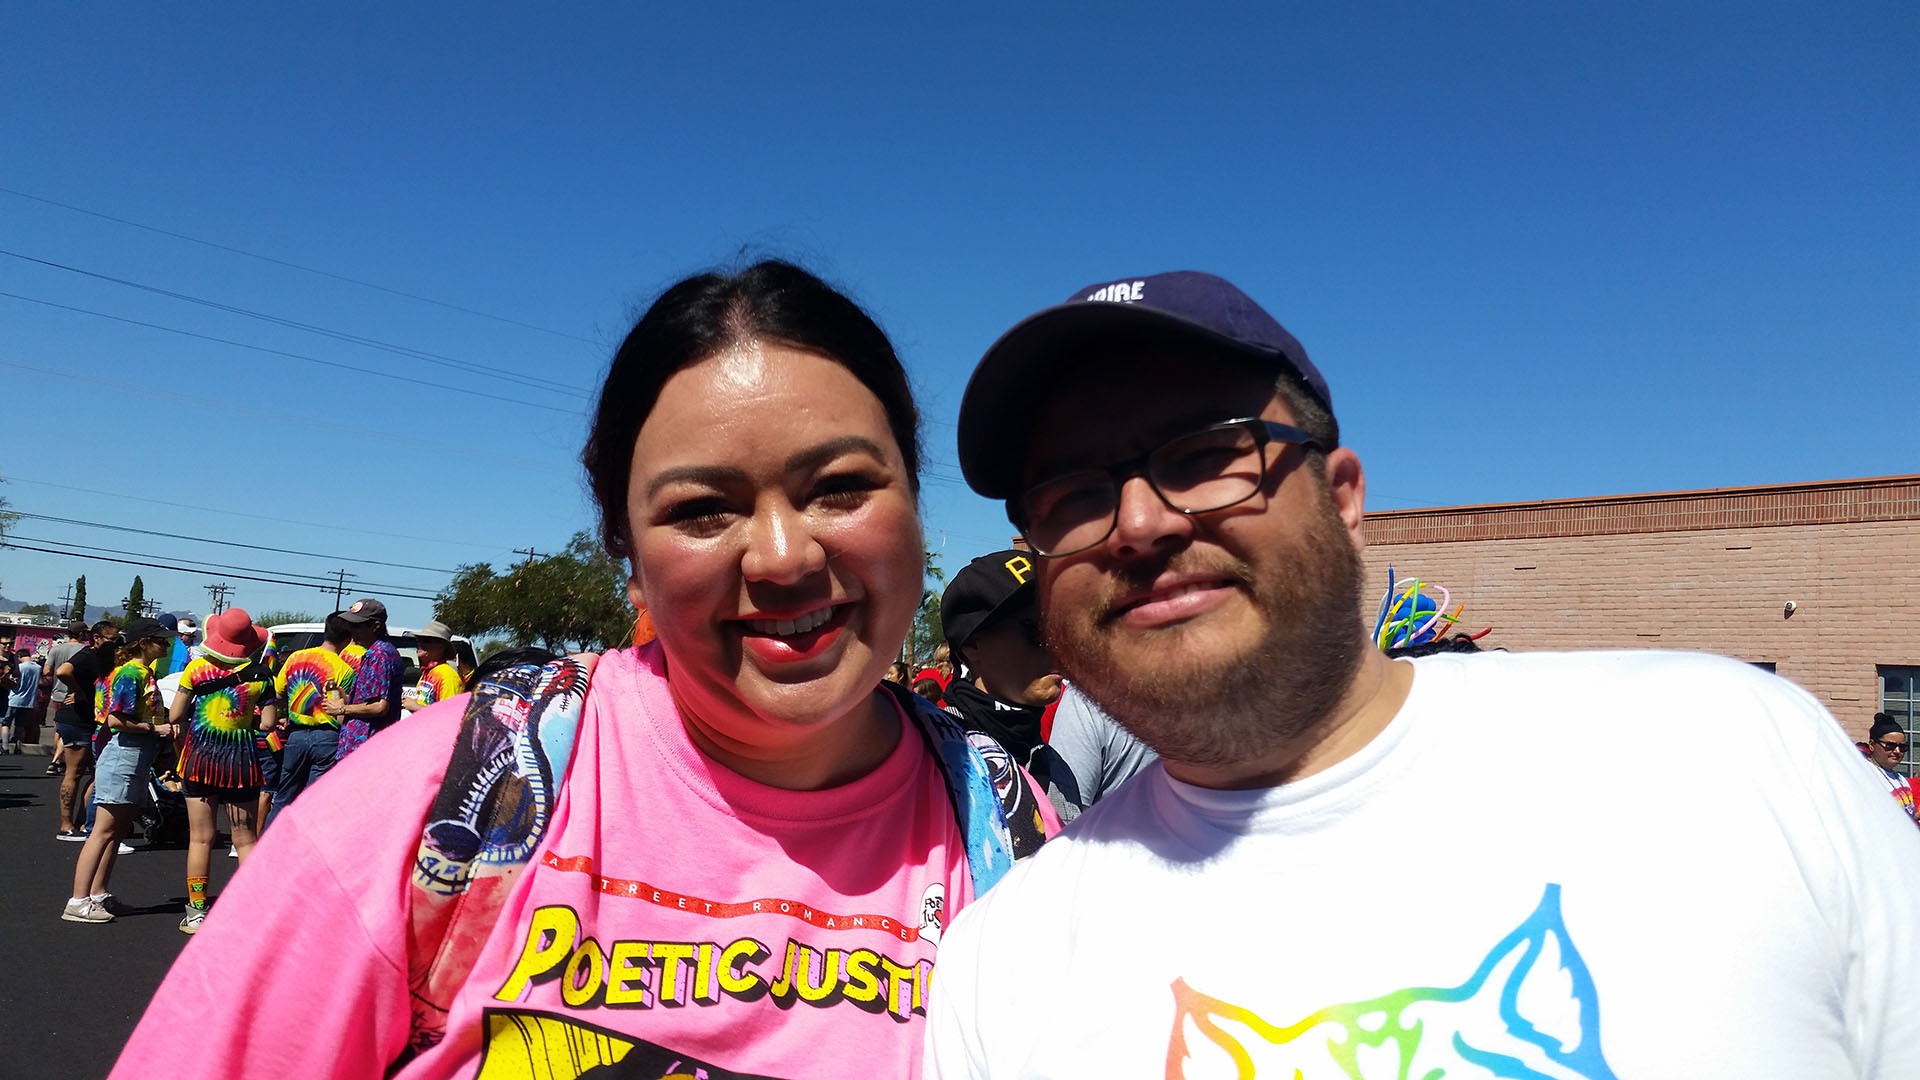 Lizette and Jose Trujillo are the parents of a transgender son. Lizette is the facilitator